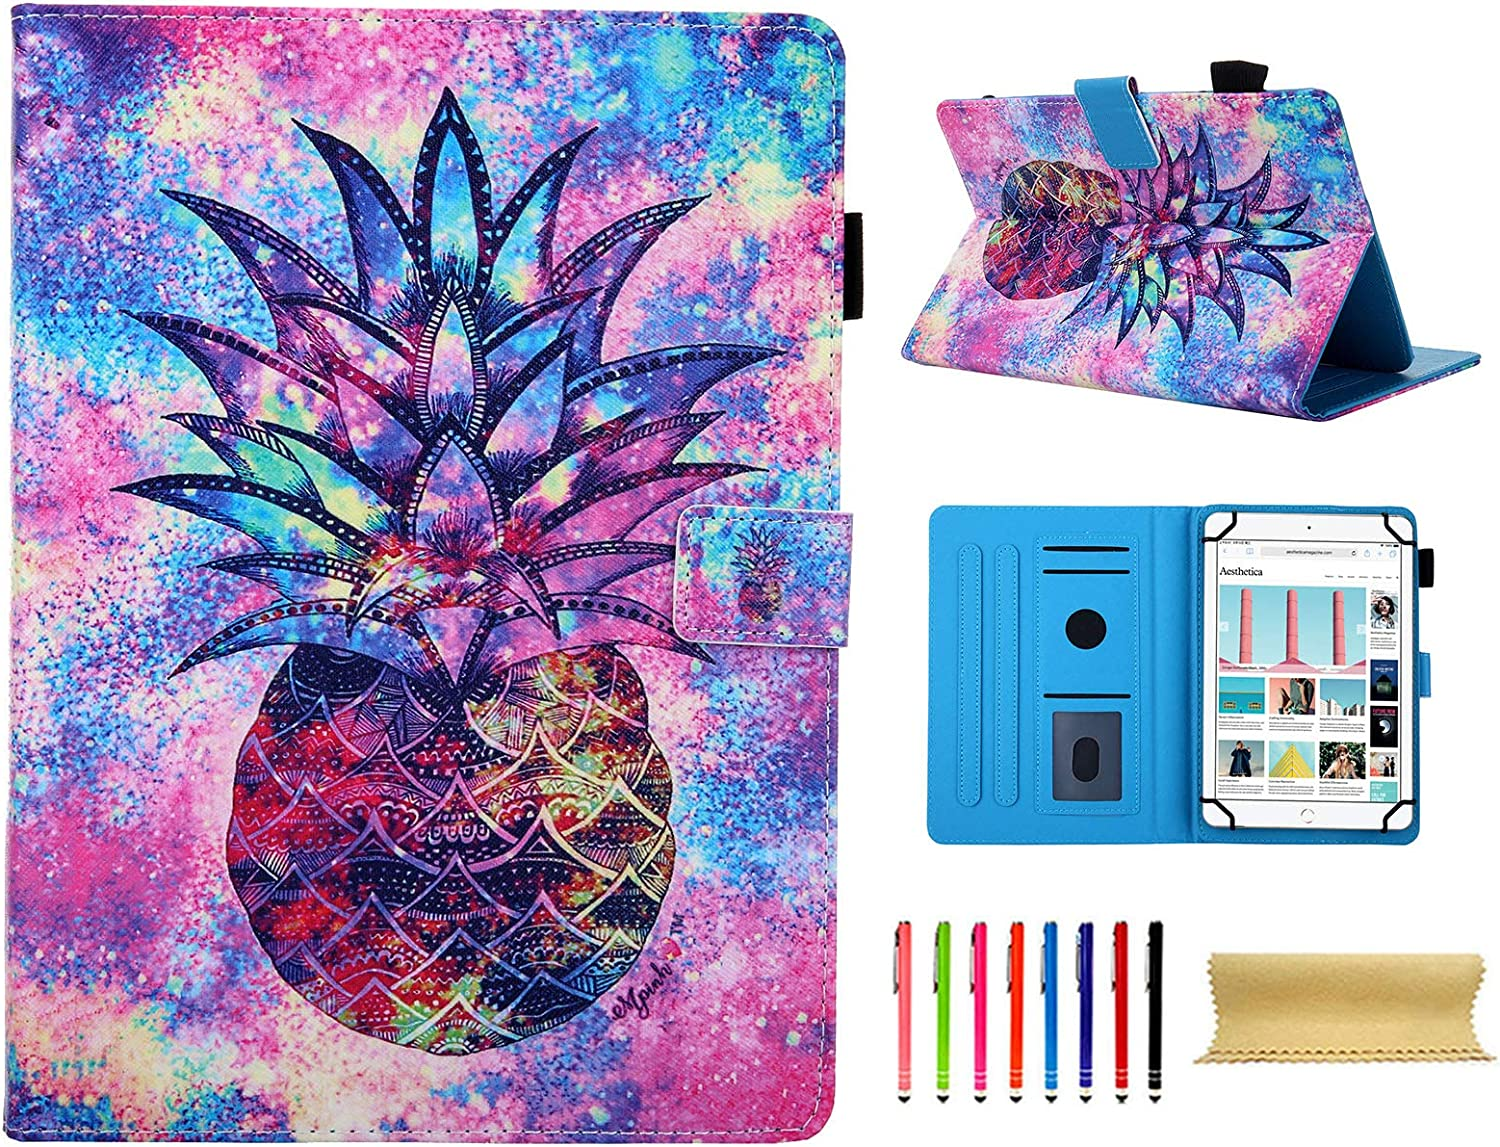 Universal 8 Inch Tablet Case, Techcircle PU Leather Multi Angle Stand Folio Wallet Cover with Pen Card Holder Protective Case for 7.5-8.5 Inch iPad Mini, Kindle, Windows Tablet, Color Pineapple